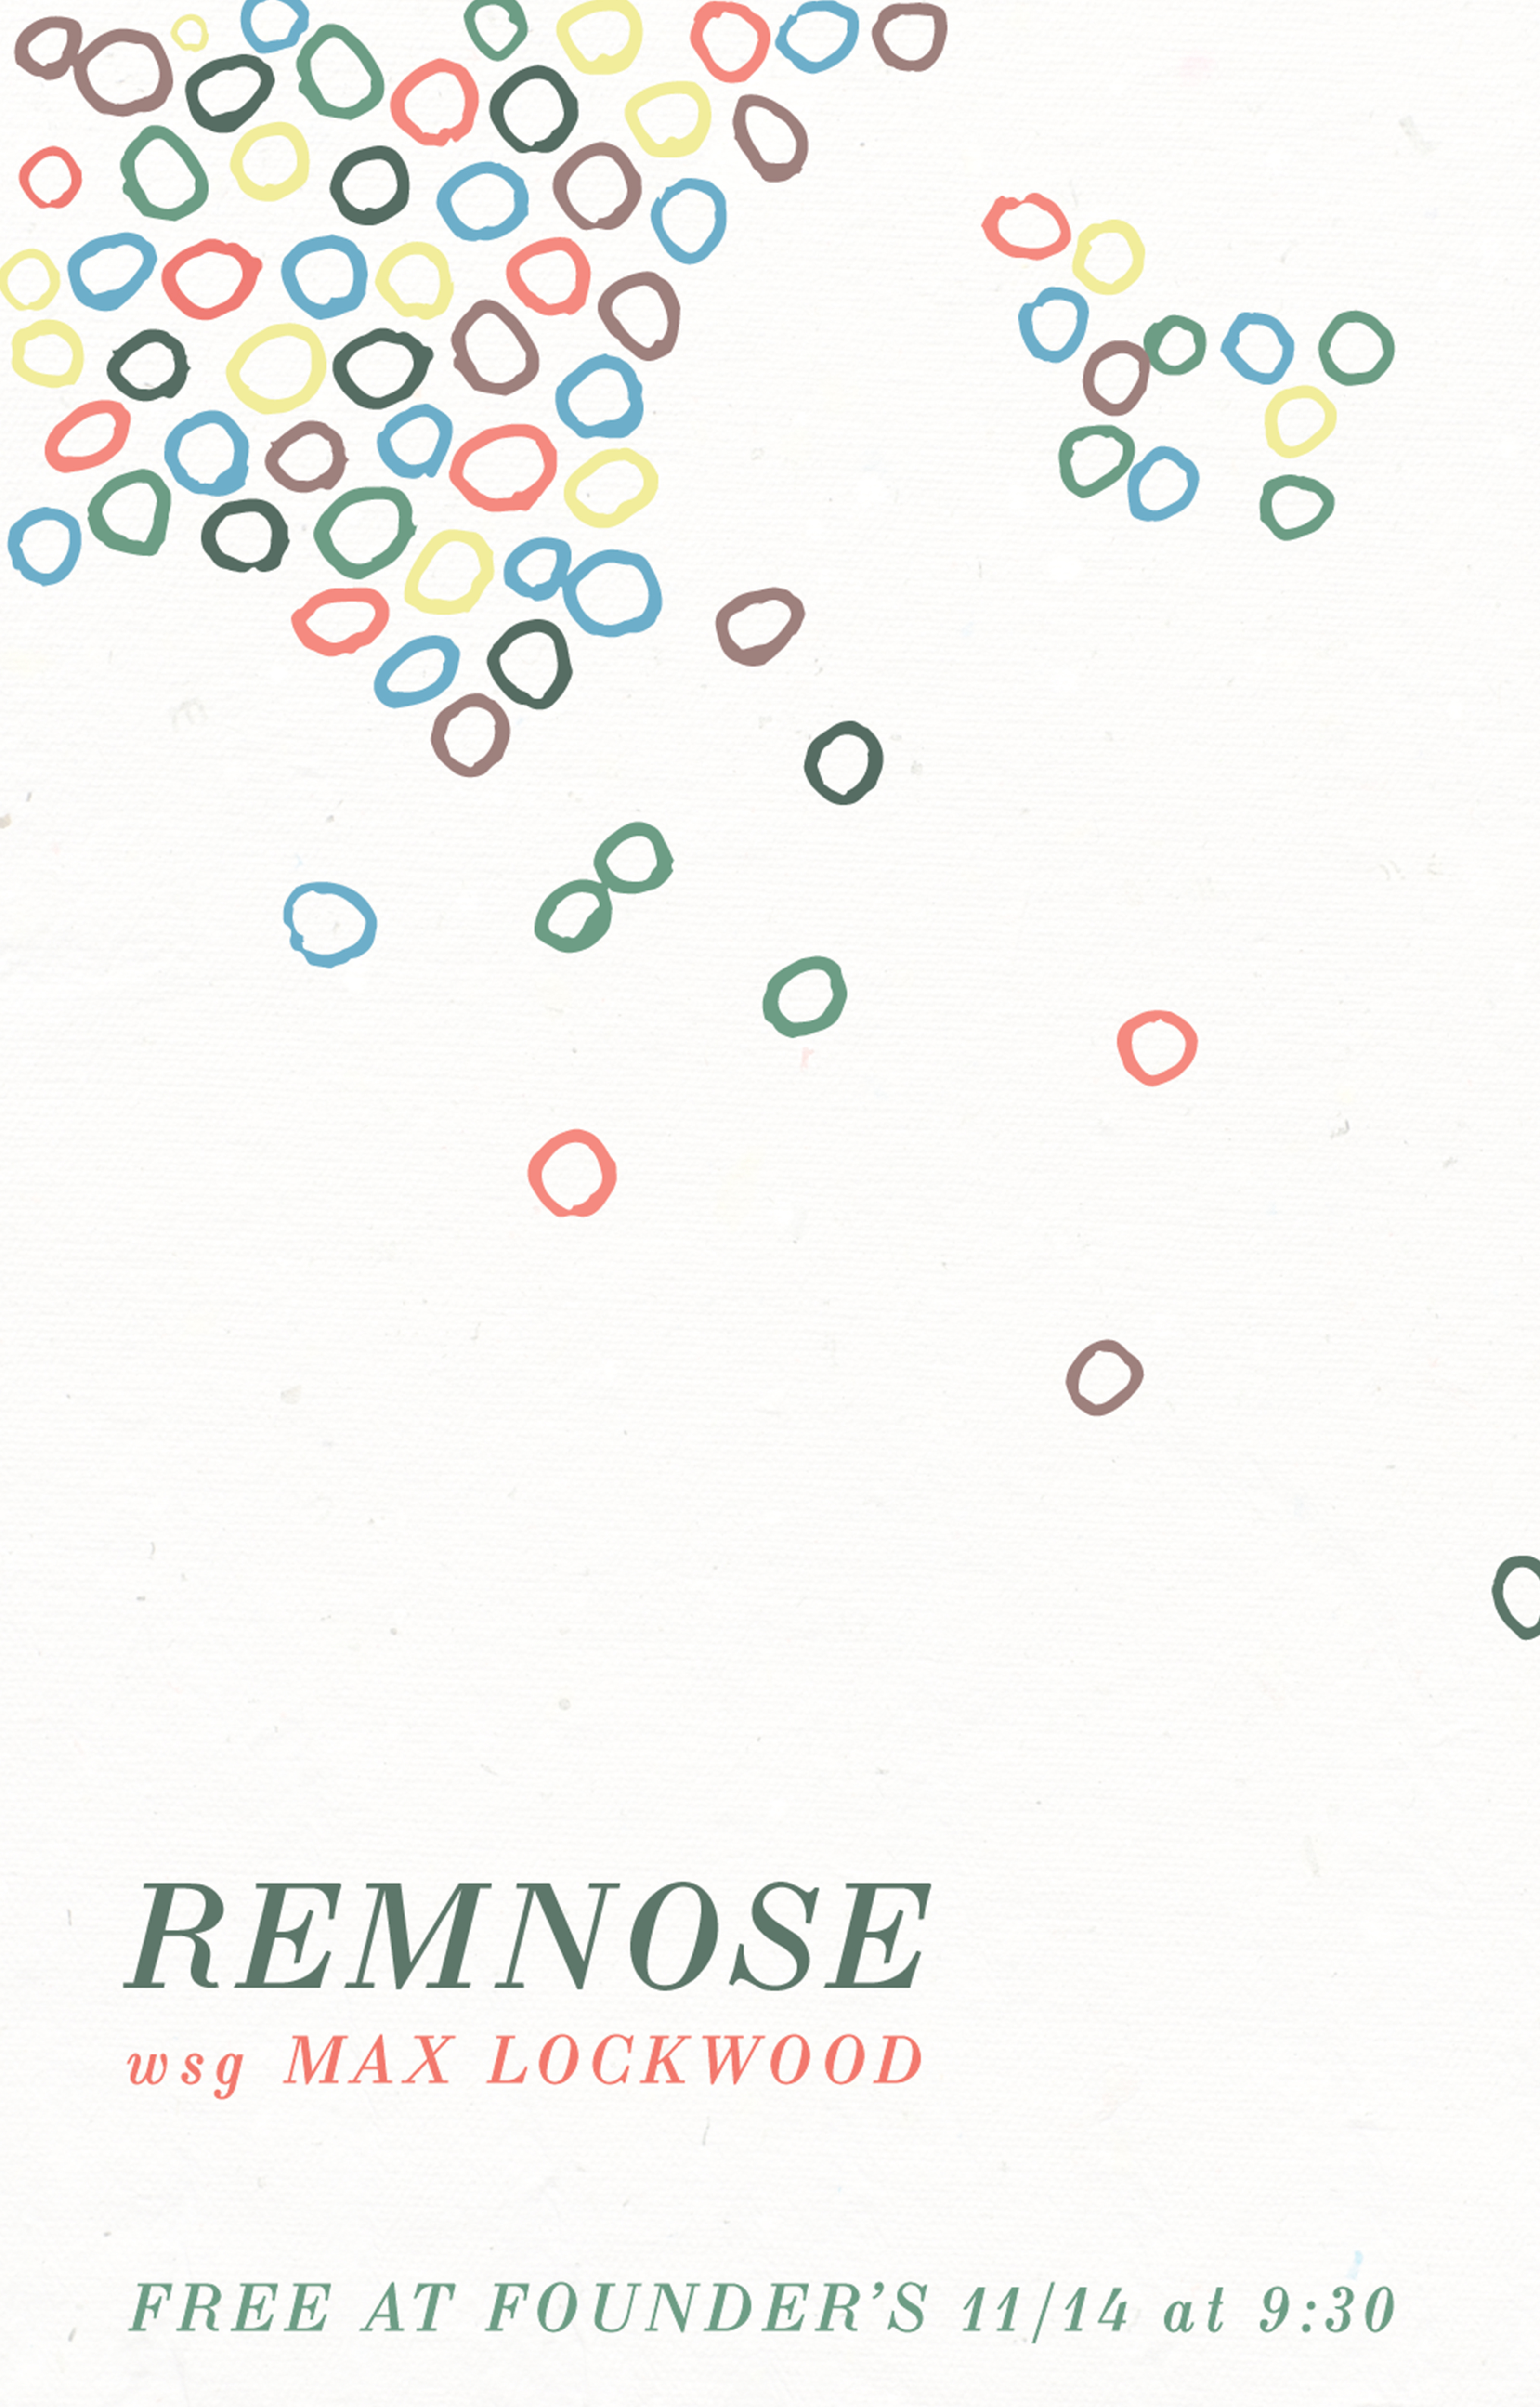 Remnose event poster hosted by Founders Brewing Co.